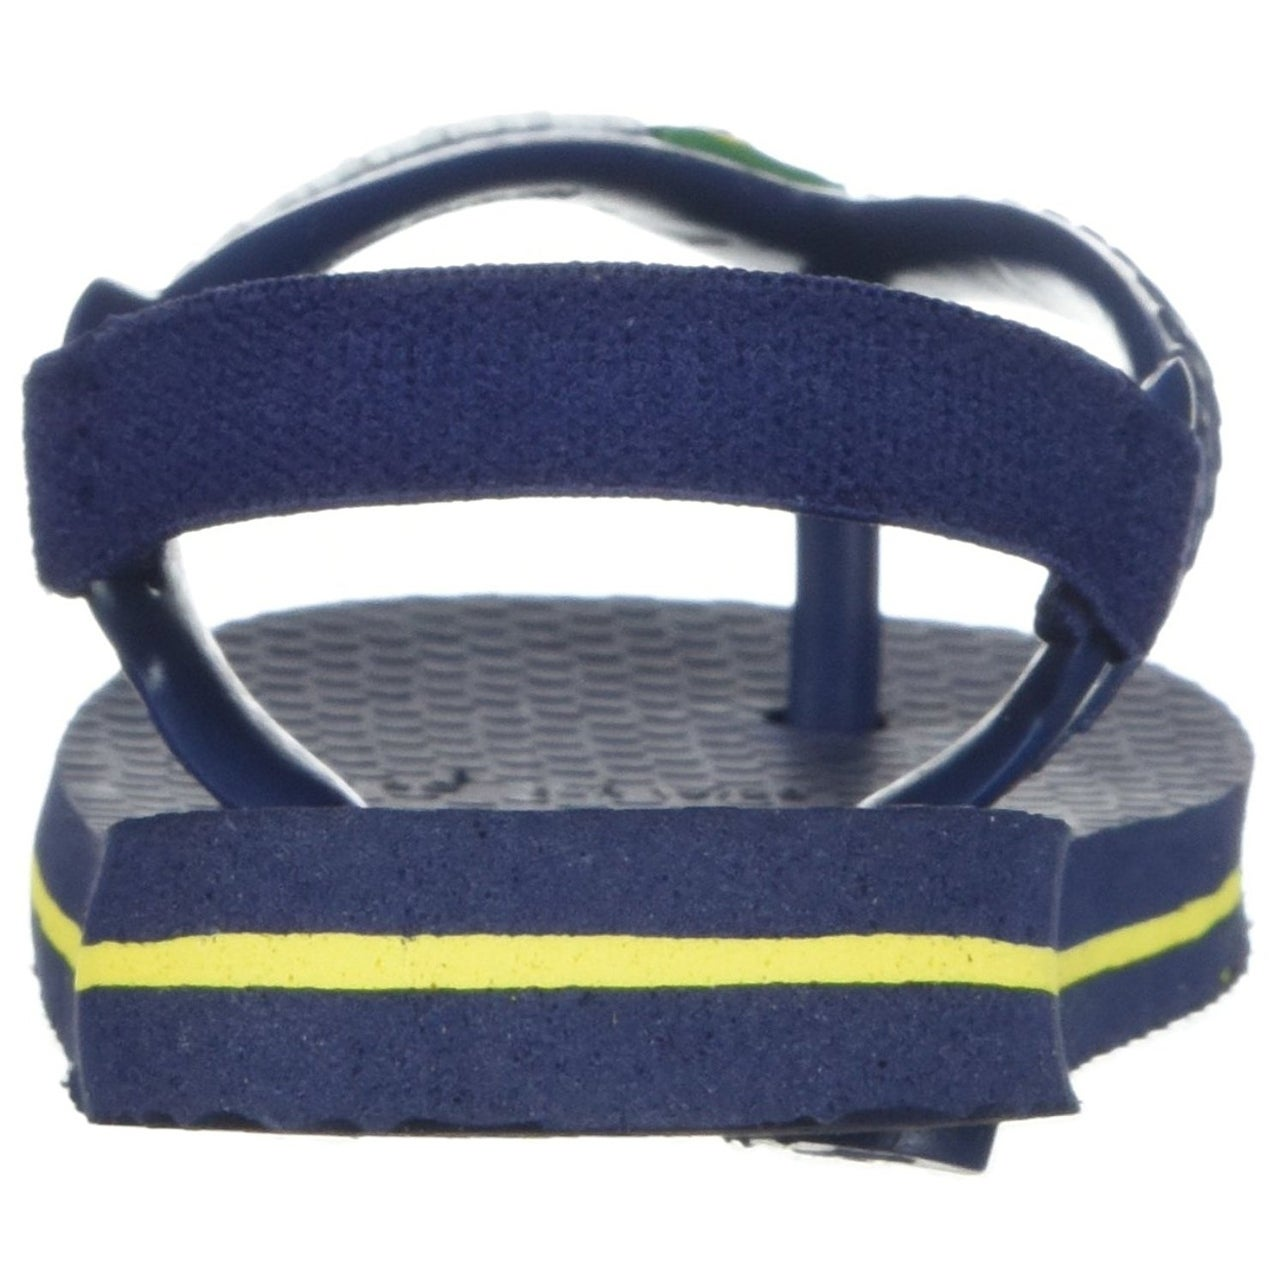 8bef84a3823b7b Shop Havaianas Kids  Baby Brazil Logo Sandal Navy Blue Citrus Yellow -  17 18 br infant (4 m us) - Free Shipping On Orders Over  45 - Overstock.com  - ...